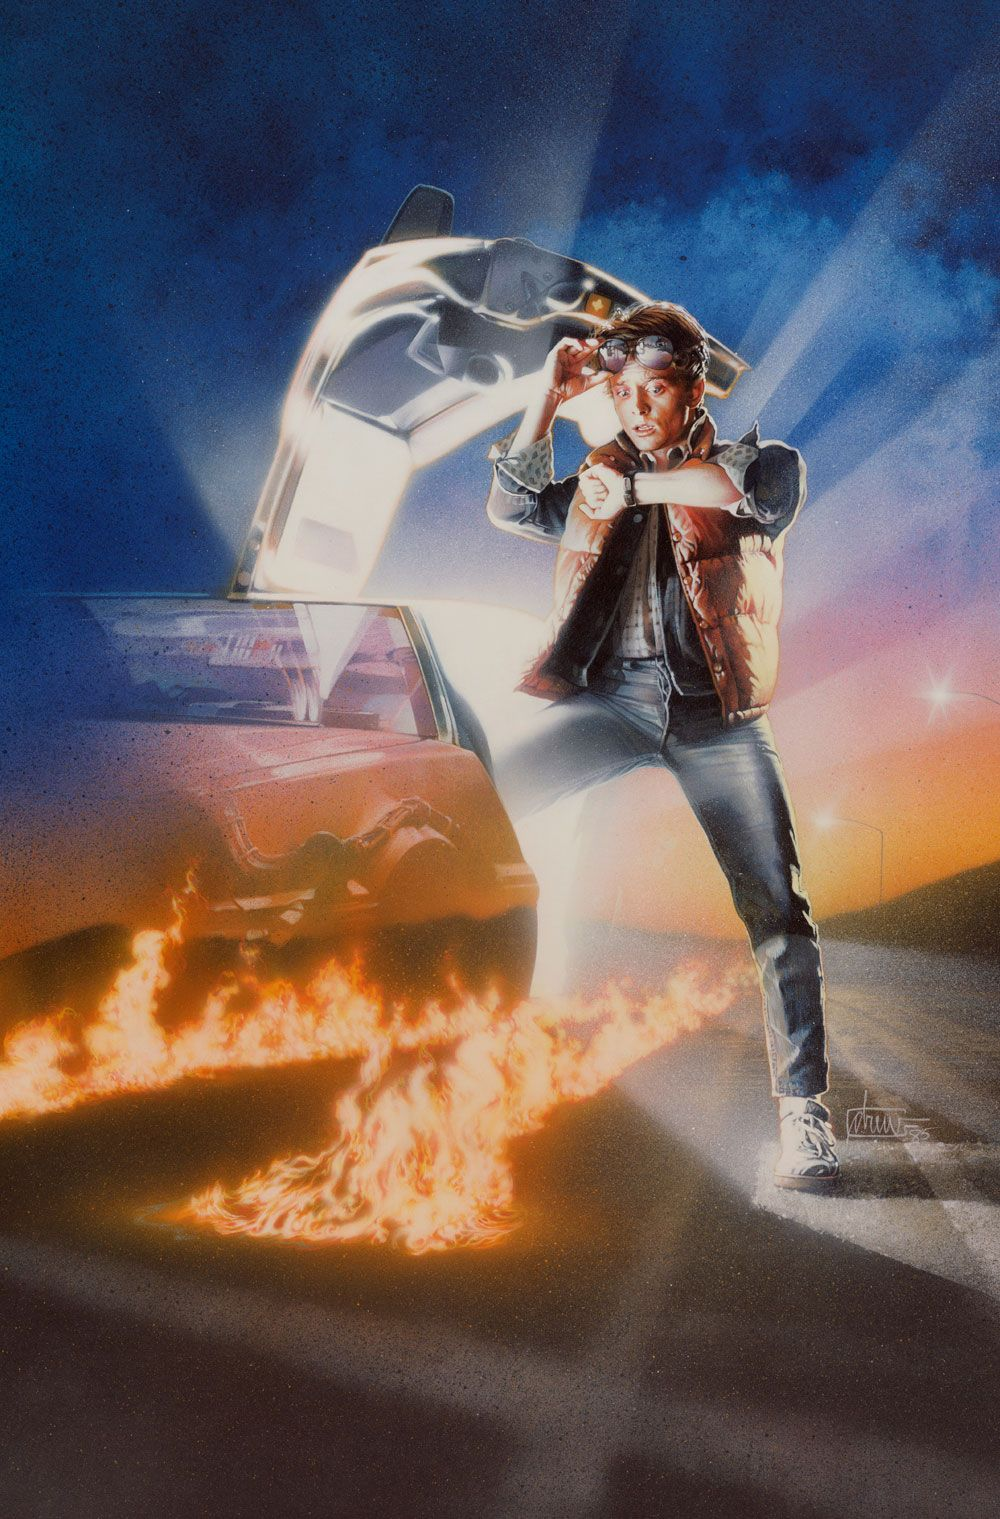 """Back to the Future I, II & III  Medium: Acrylic paints and colored pencils on gessoed board Size: 24x36 inch live art for each on 30x40 inch boards Year 1985 As the movie is one story in three parts, so the classic artwork cannot be seperated. They remain one.  Each one signed """"drew"""" and dated '85,'89 &'90 © Copyright Universal Studios 1985-1990"""